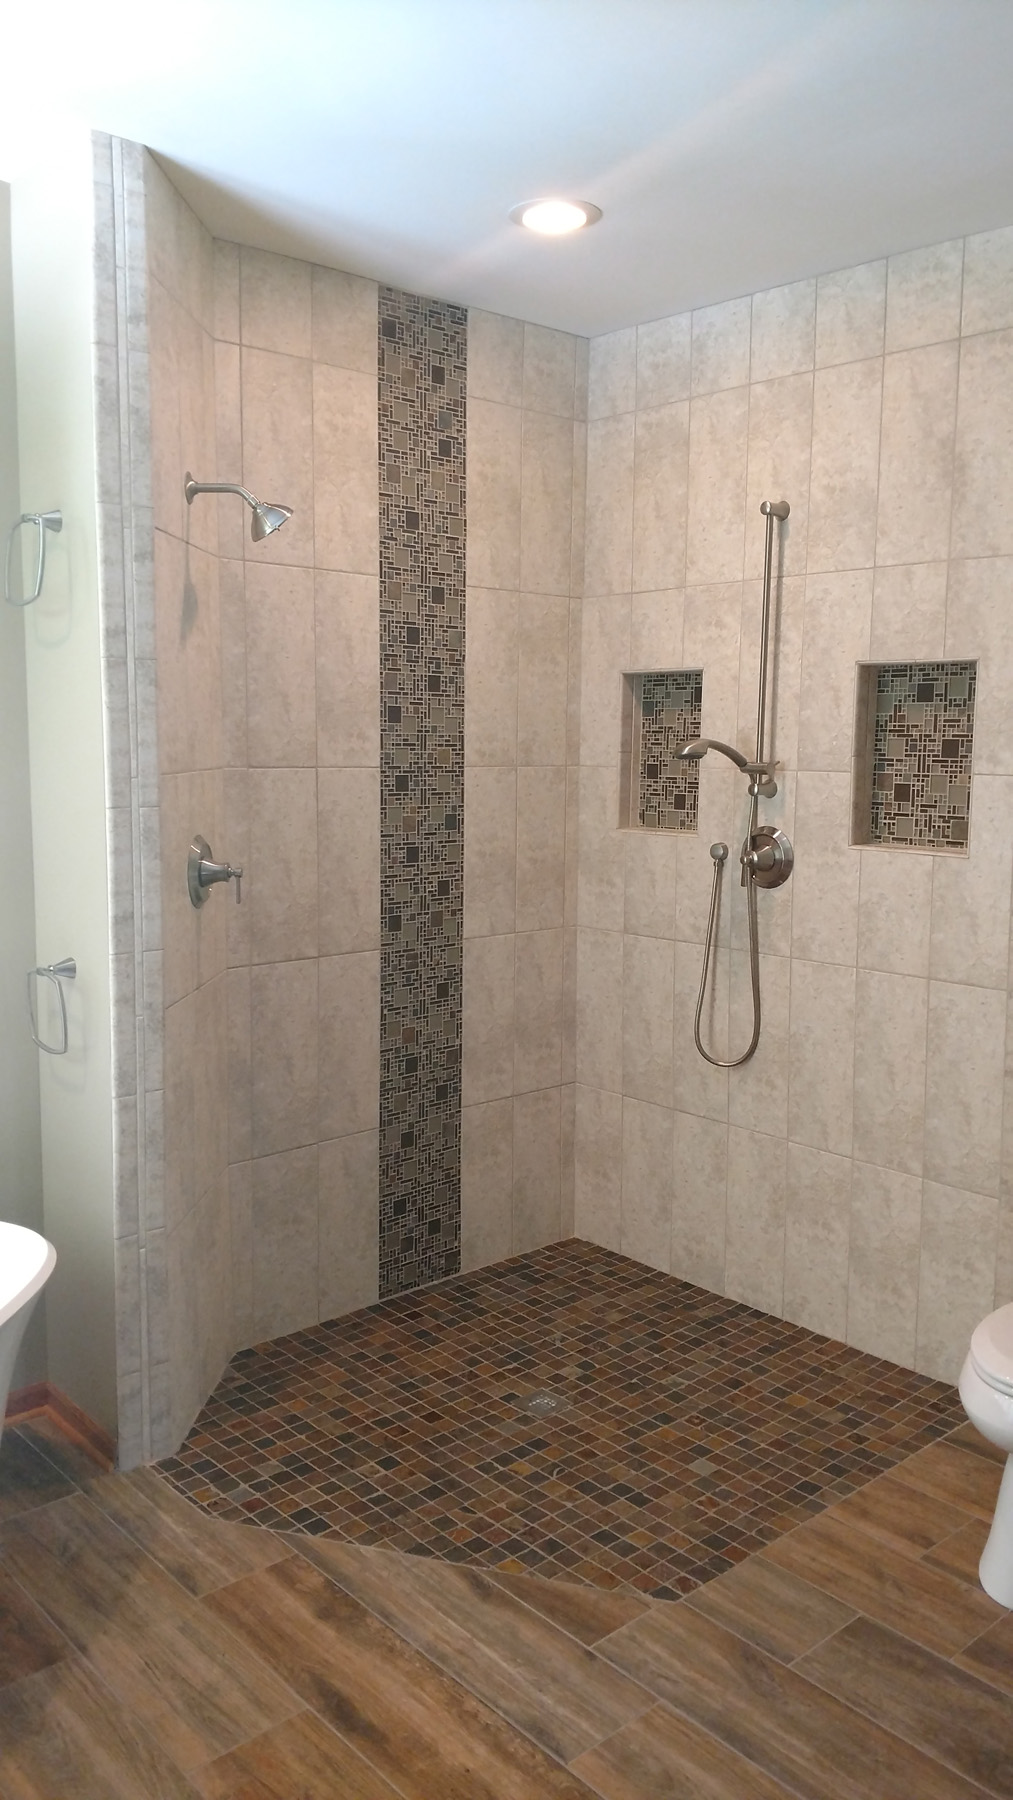 Maplewood Master Bathroom Remodel Roll In Shower